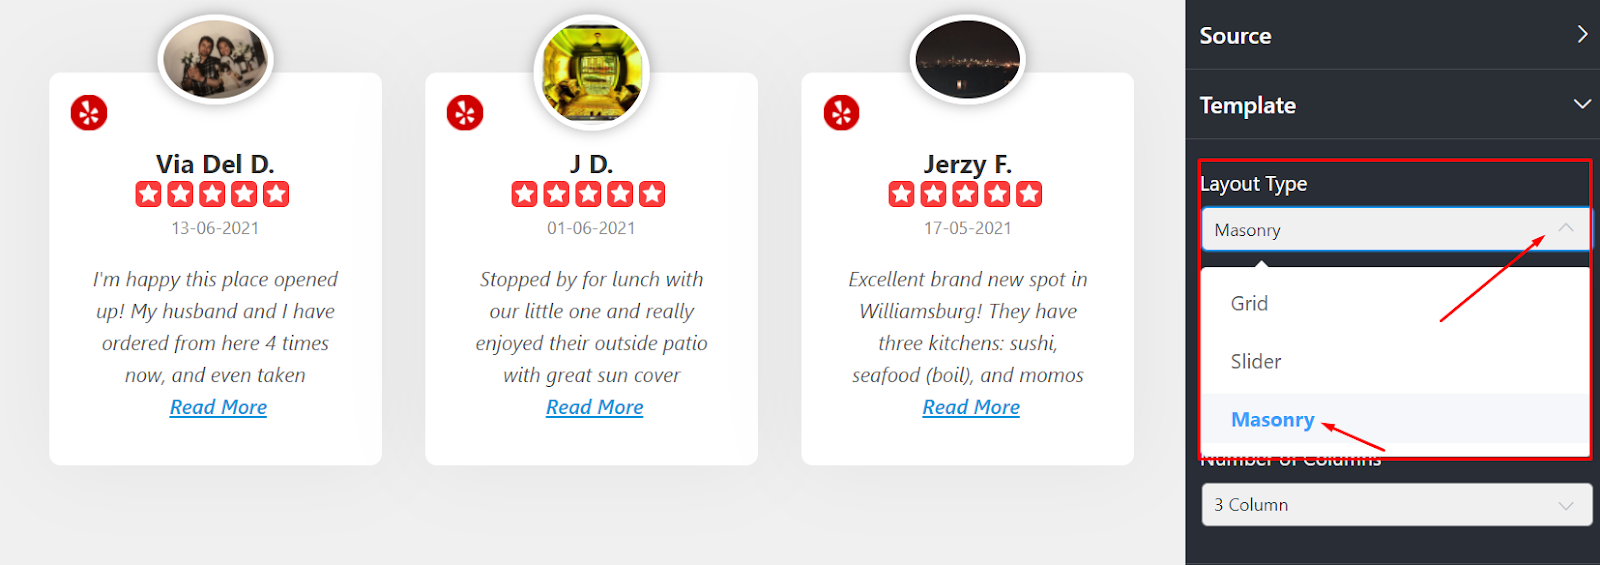 Yelp reviews layout type